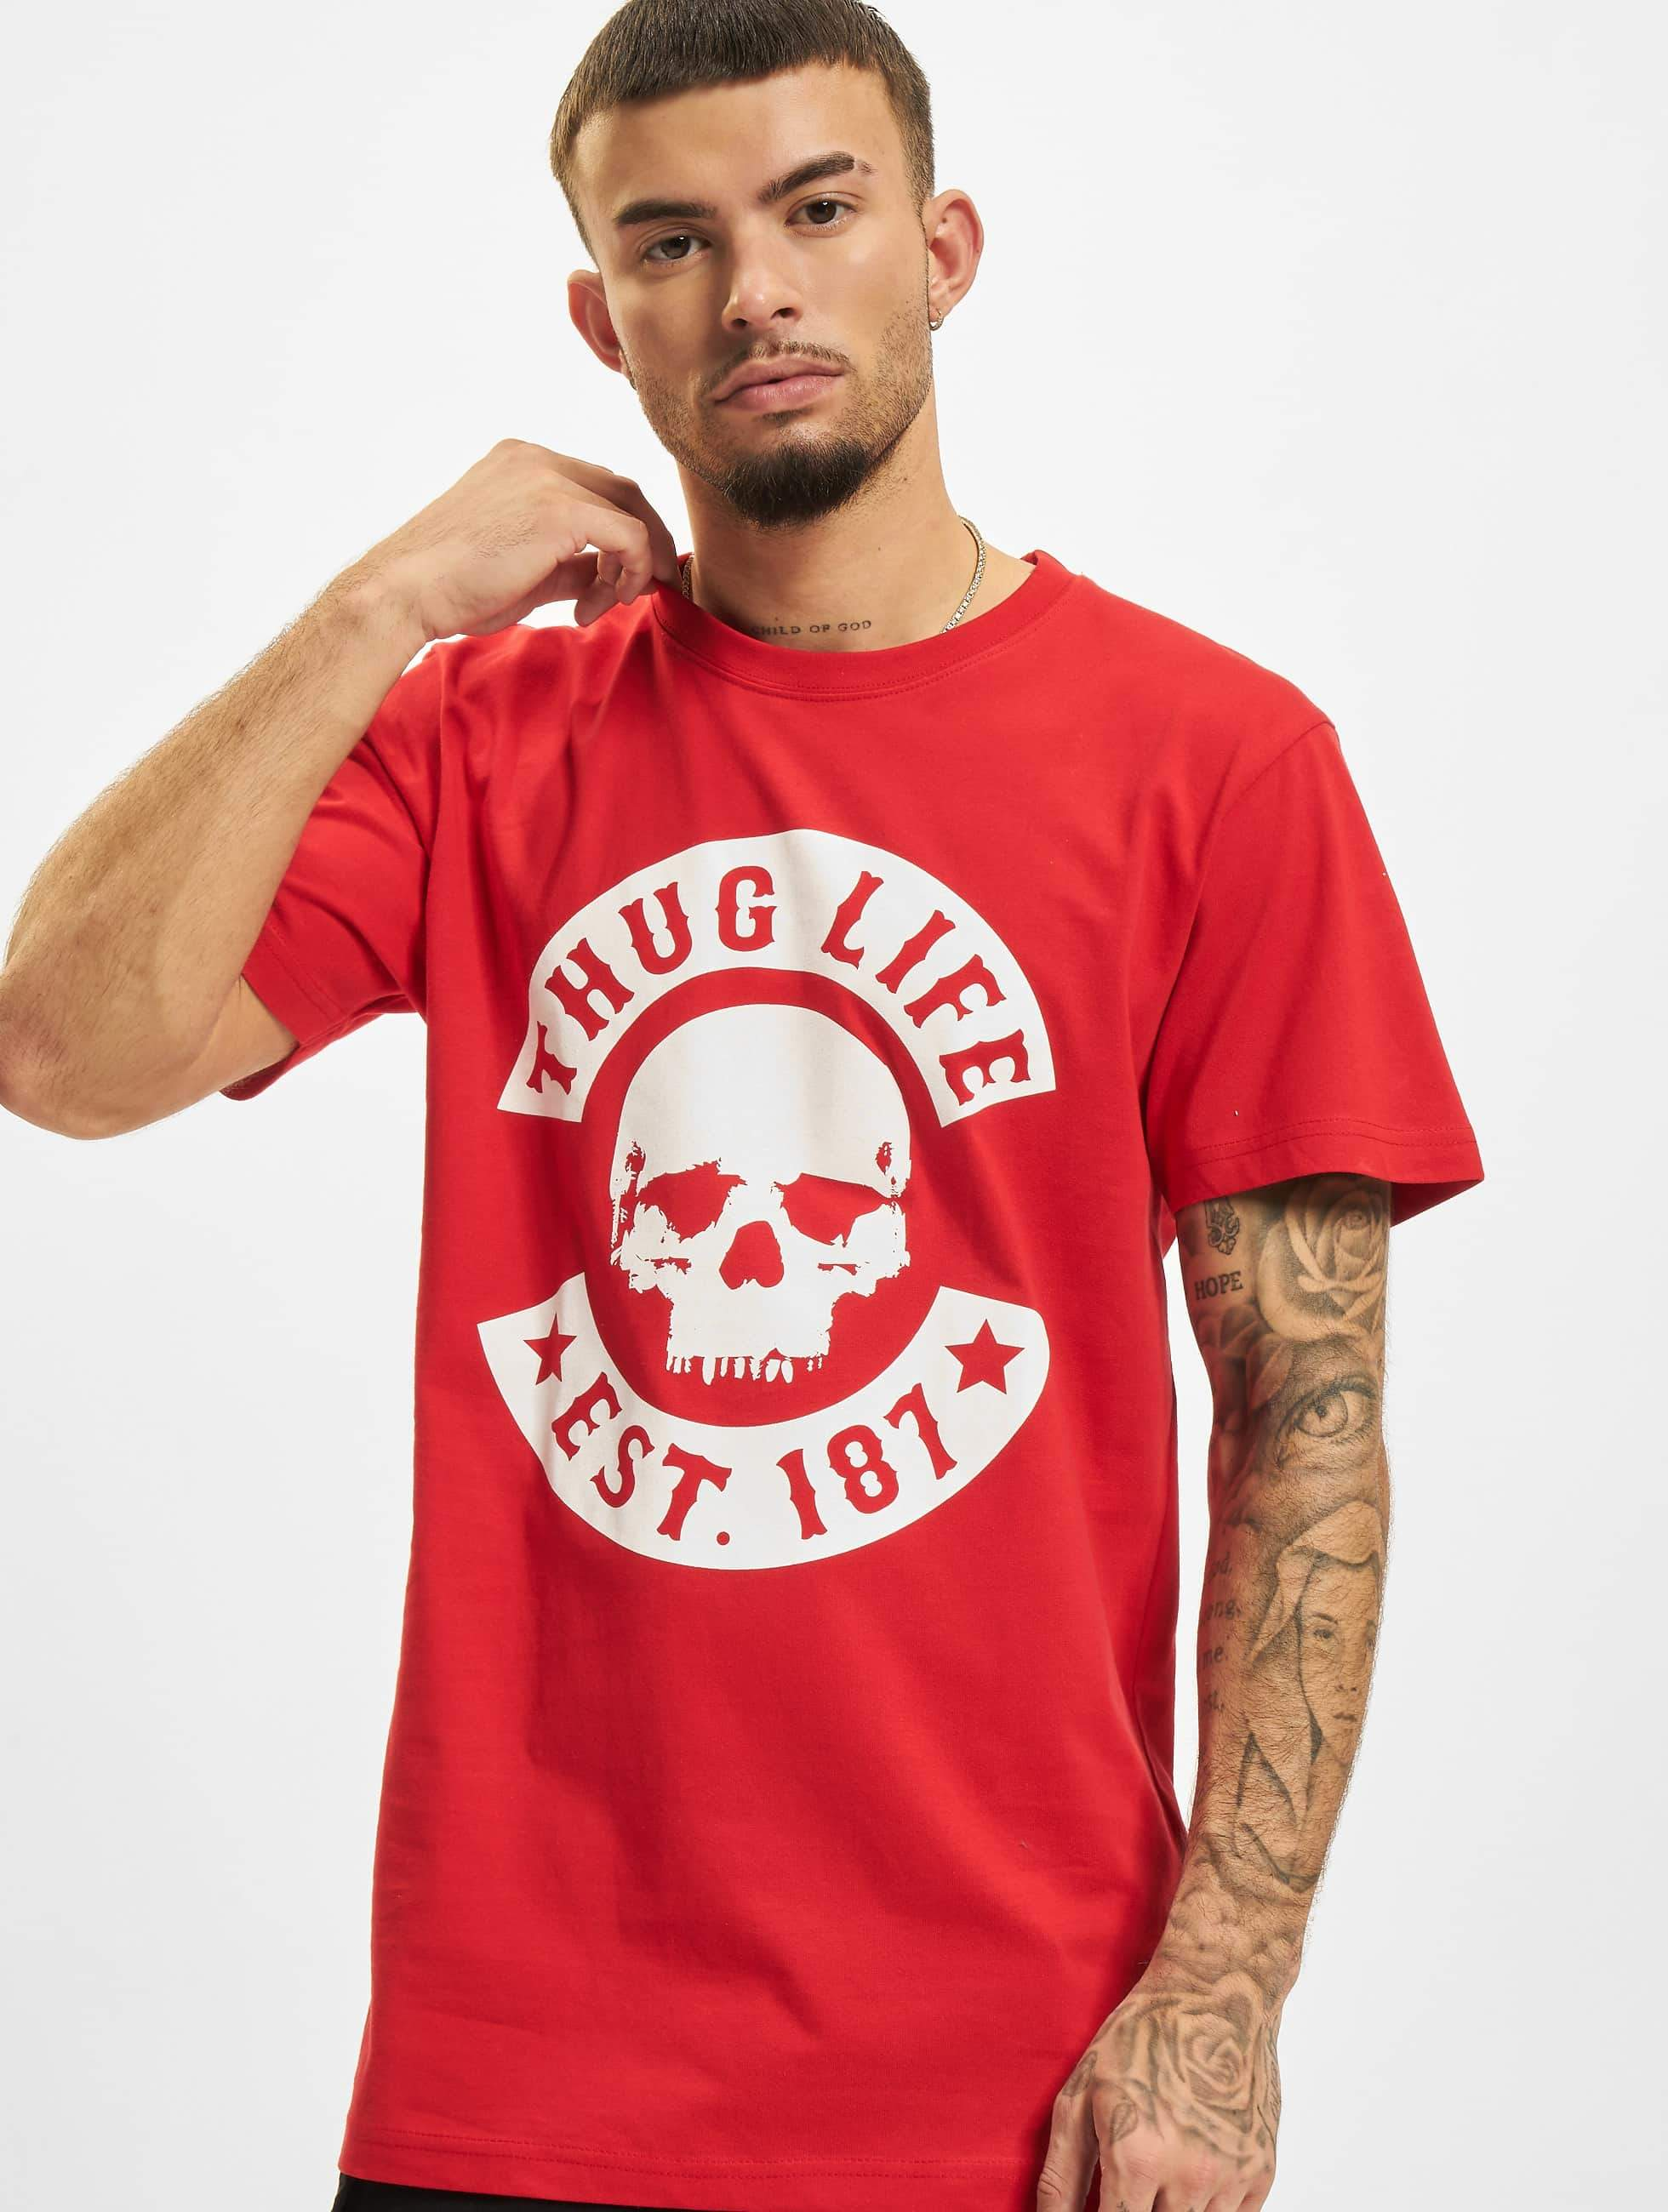 Thug Life / T-Shirt B.Skull in red L